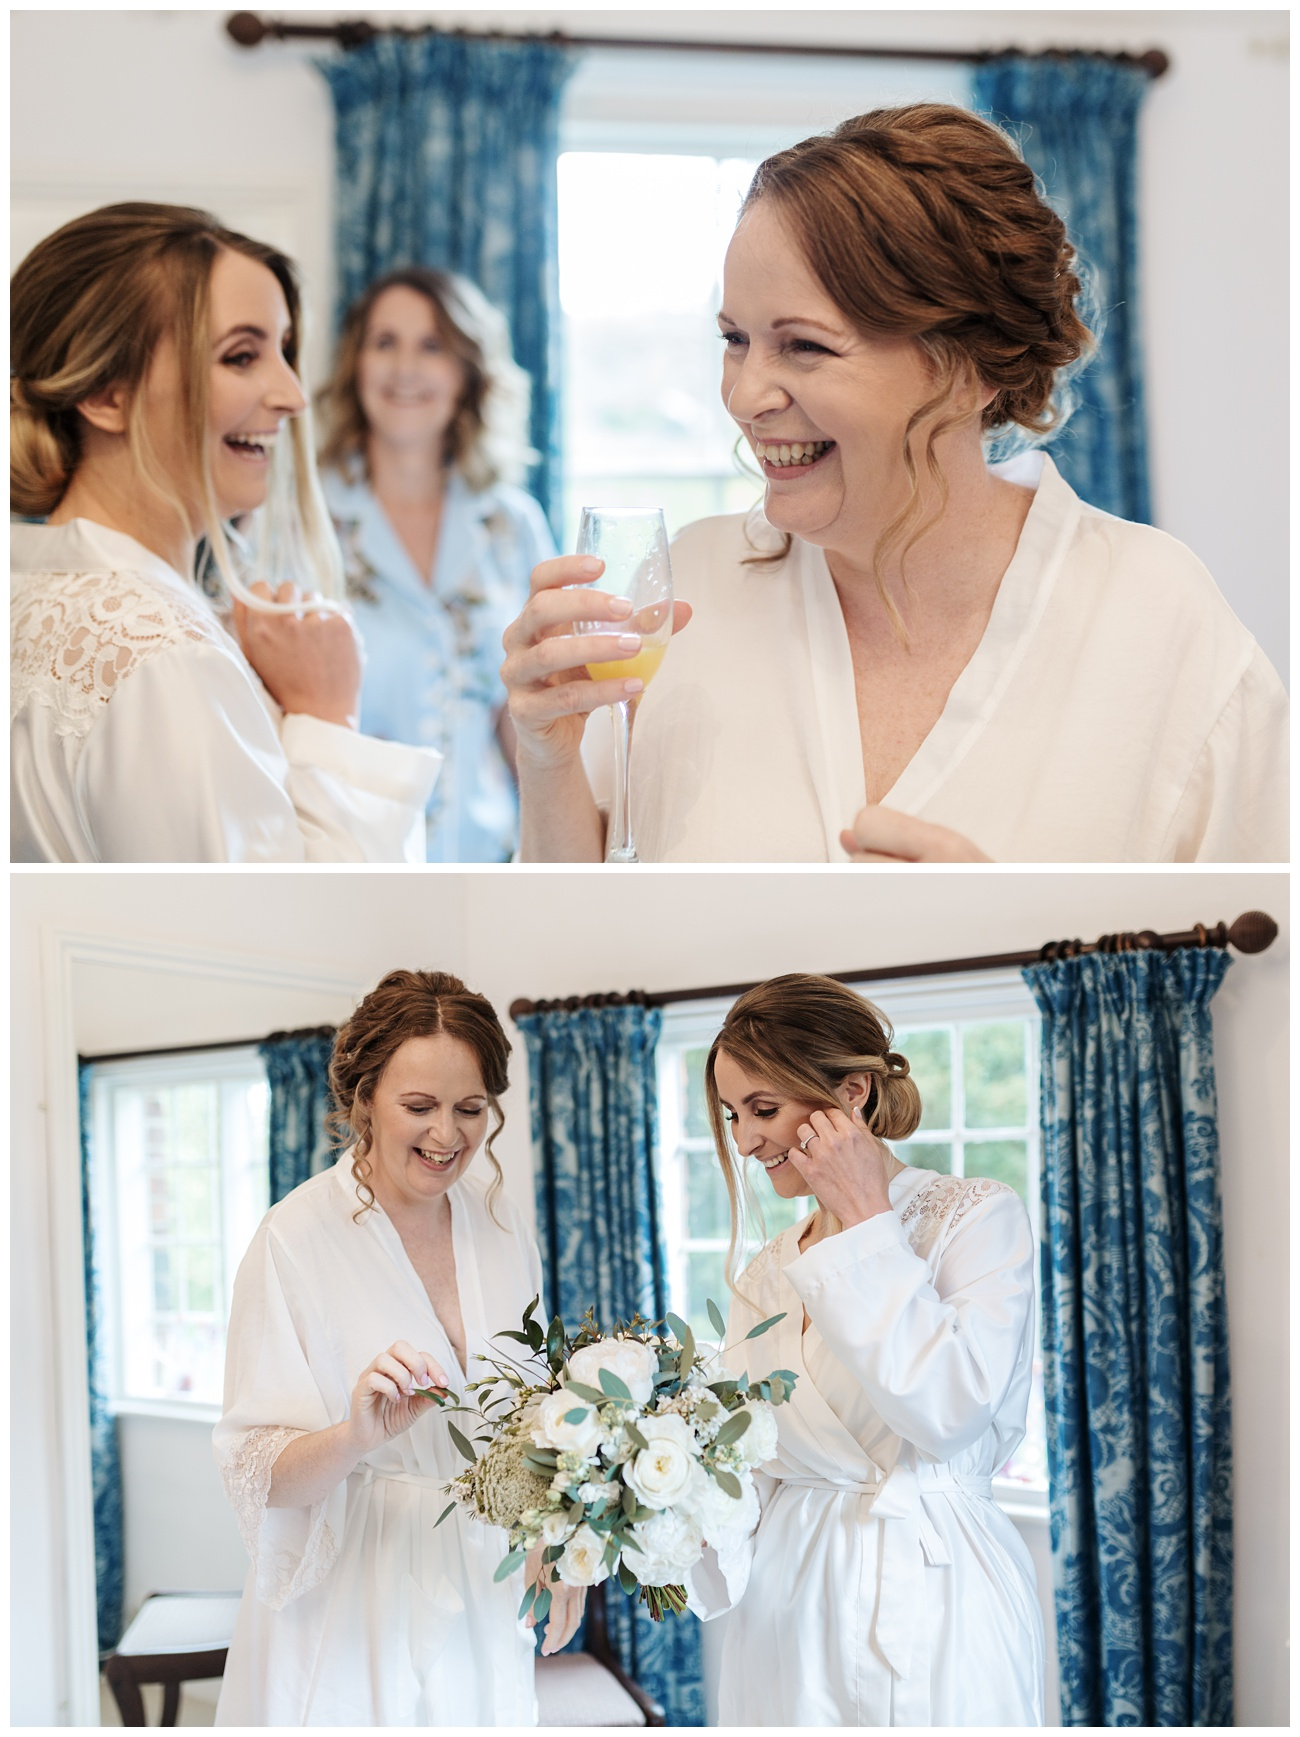 The bride and her bridesmaids laughing together